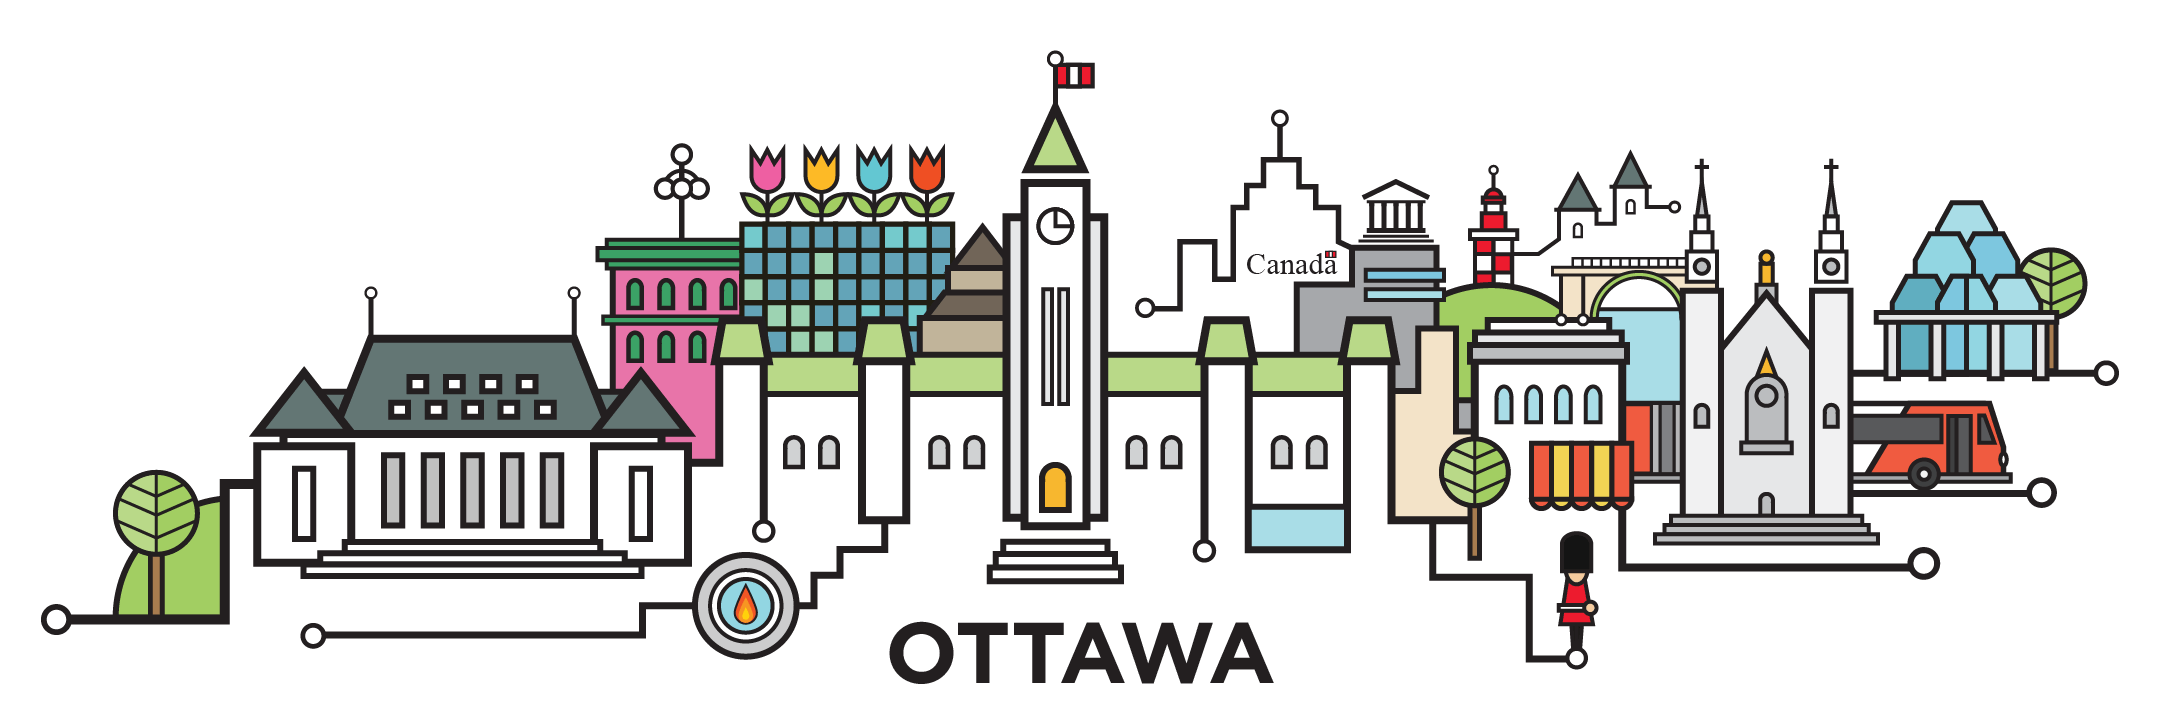 ottawa-cityline-illustration-by-loogart